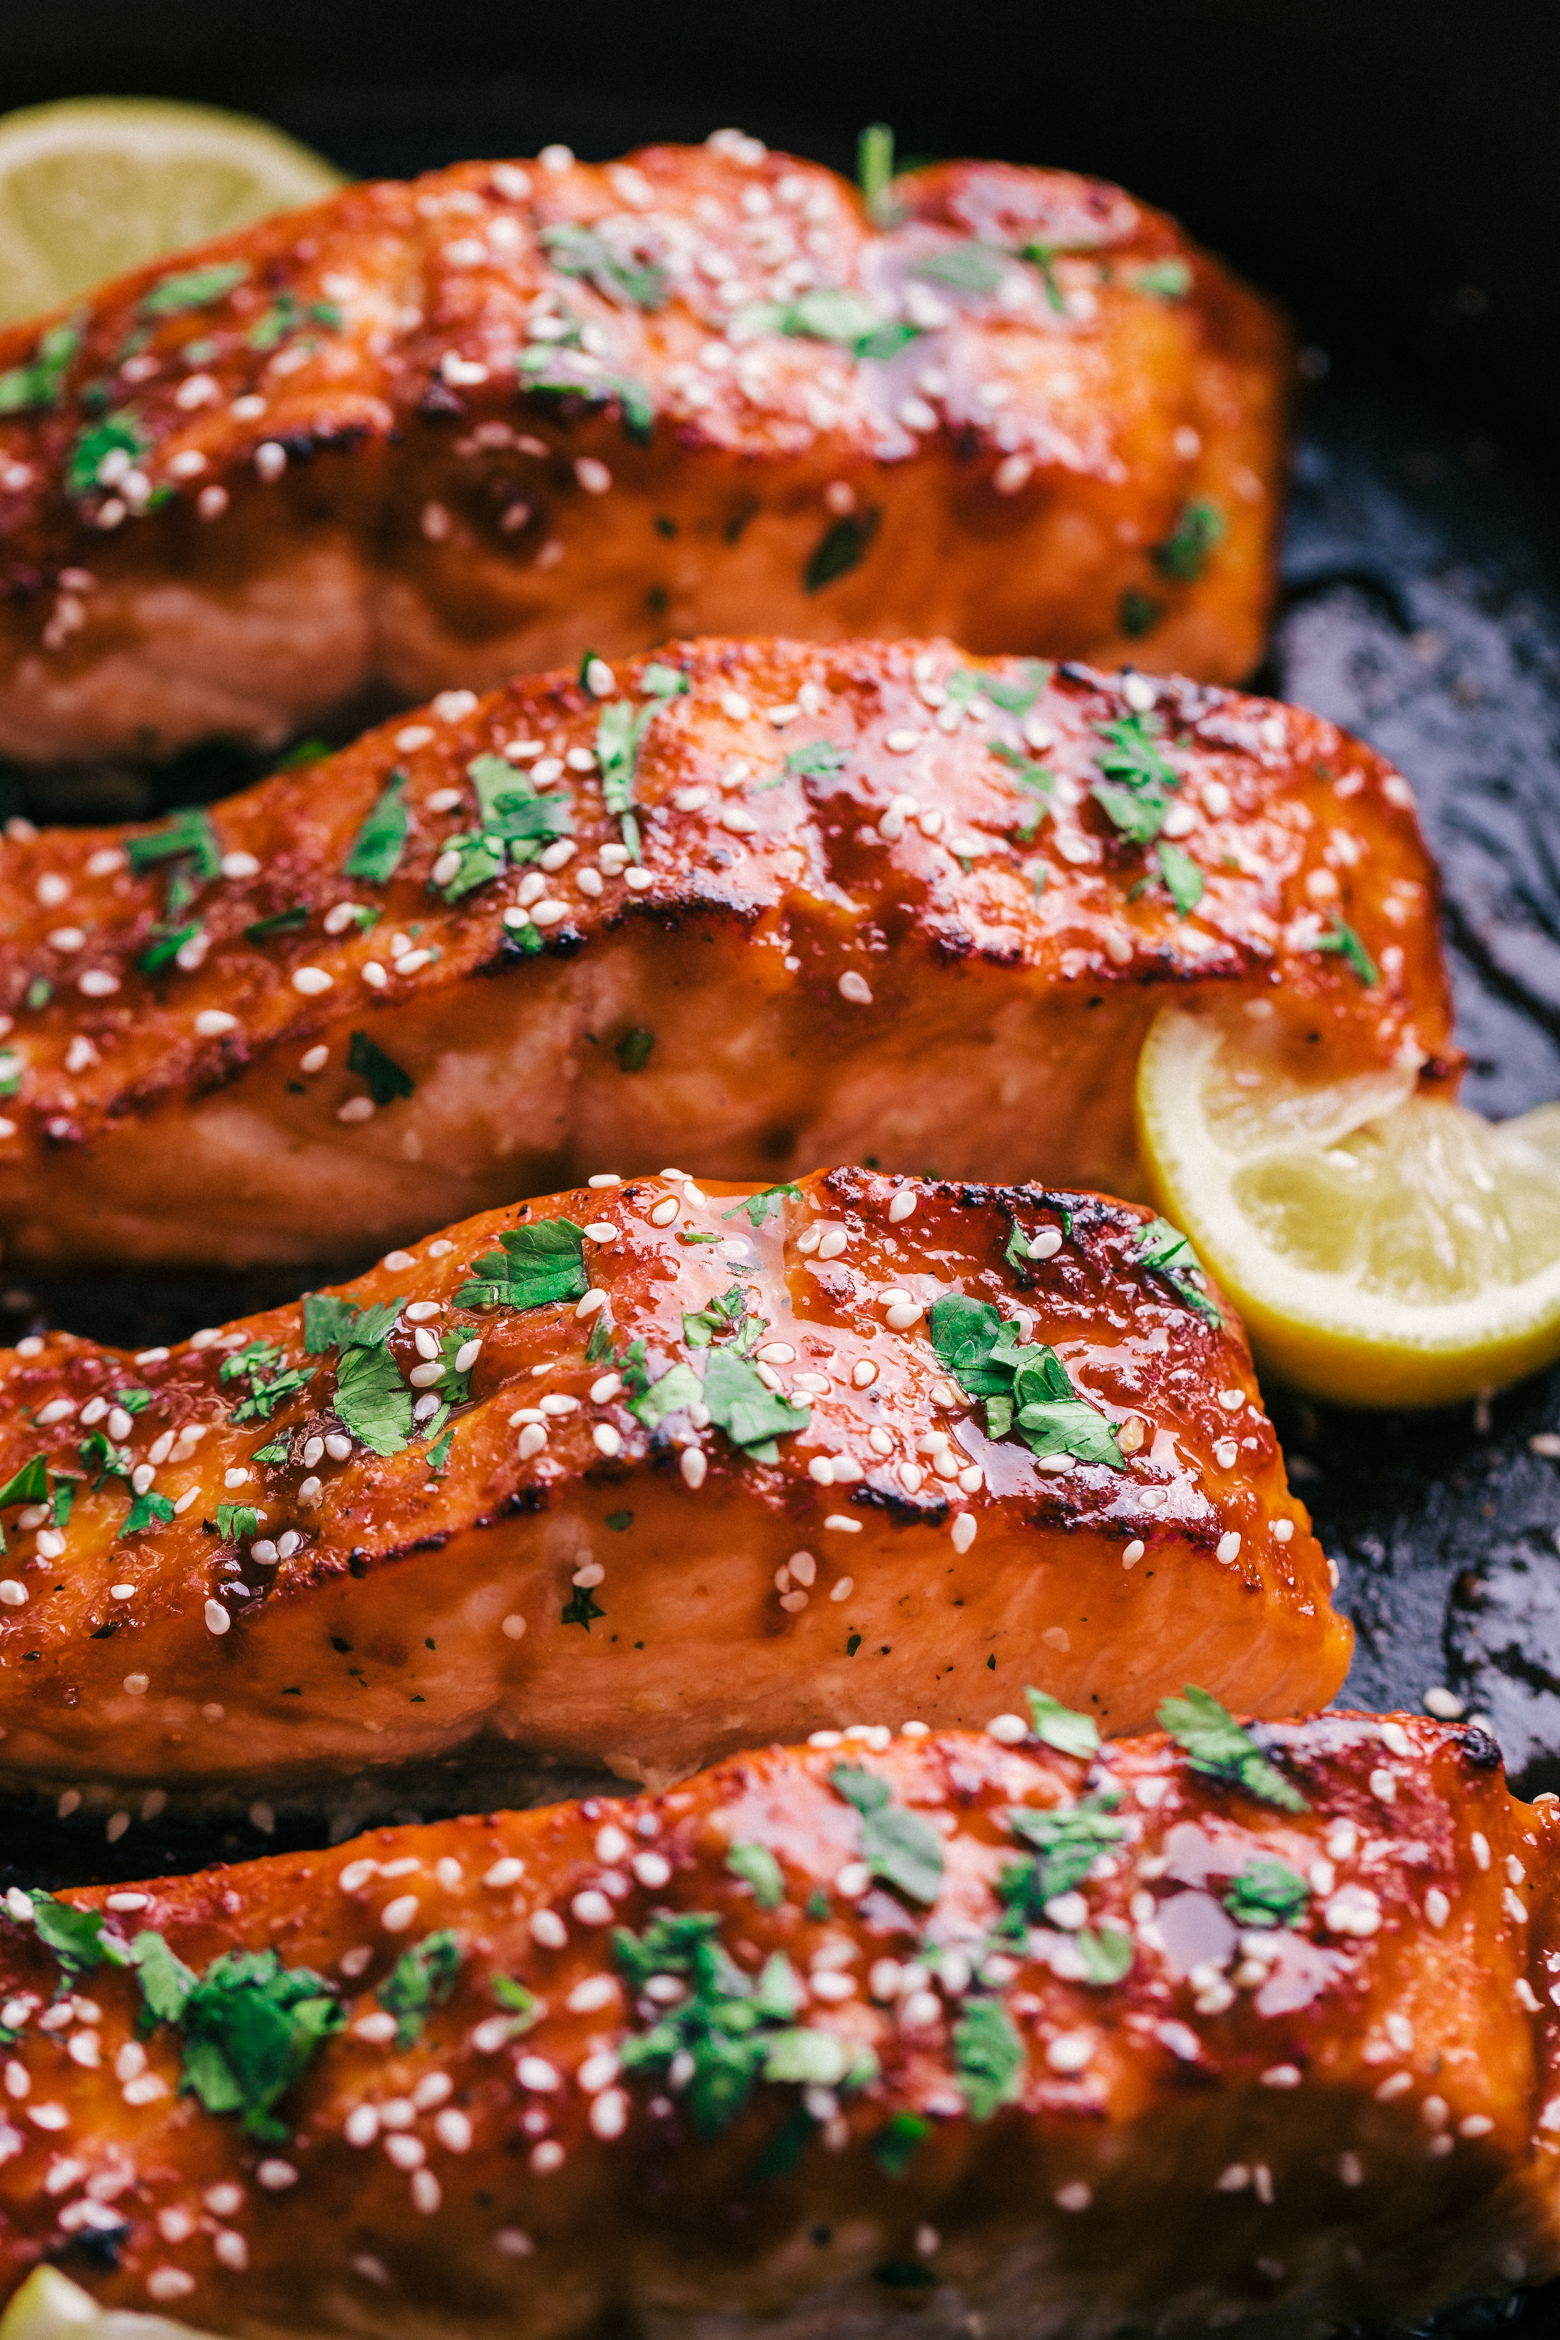 A delicious salmon recipe made with a maple glaze and cooked in a cast iron skillet by The Food Cafe.